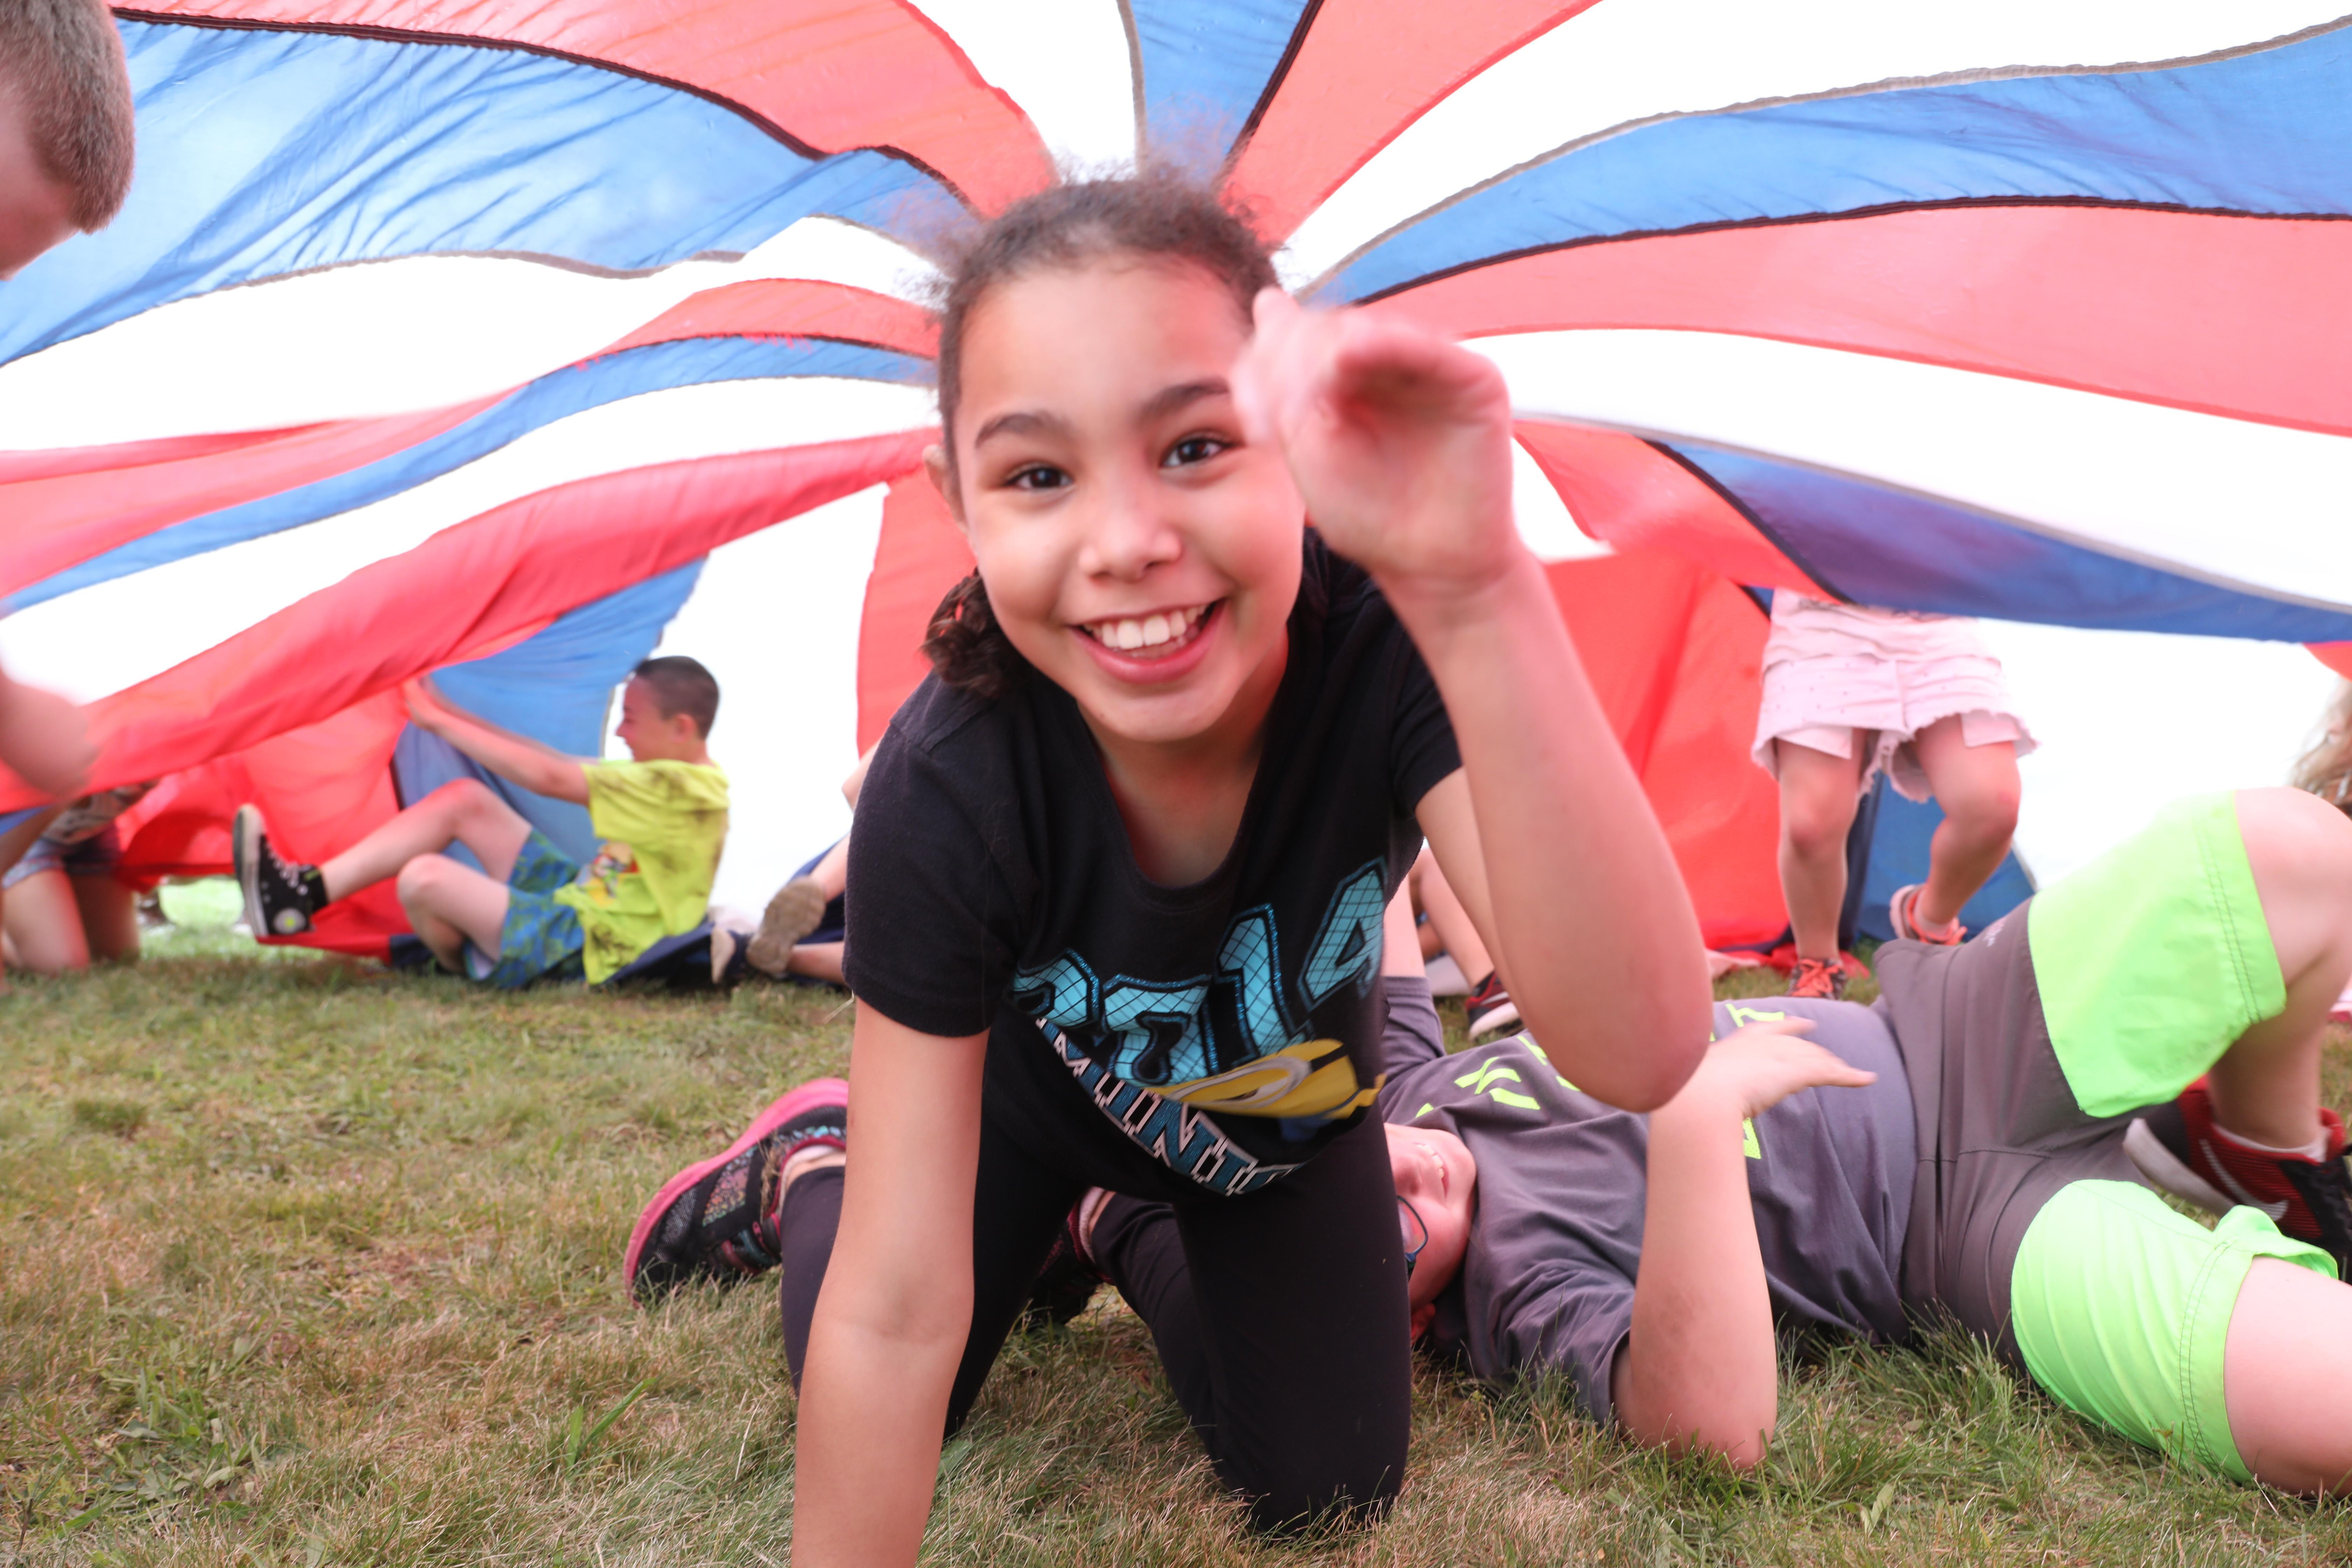 Andrew Avenue Elementary student playing under a parachute